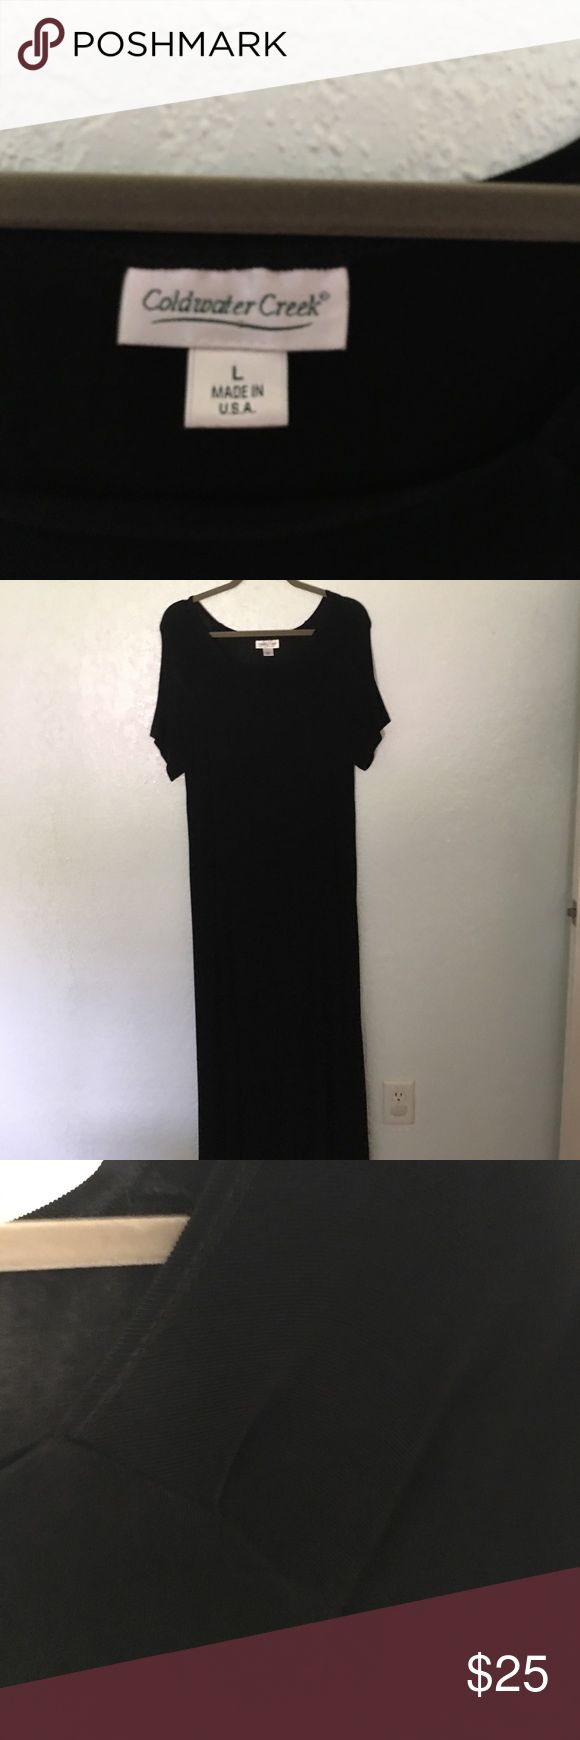 Dress Black Coldwater Creek Dress.  Perfect for traveling, pull on, lots of stretch. Pack and wear, does not wrinkle.  Add a belt or scarf, great for all seasons. Coldwater Creek Dresses Maxi